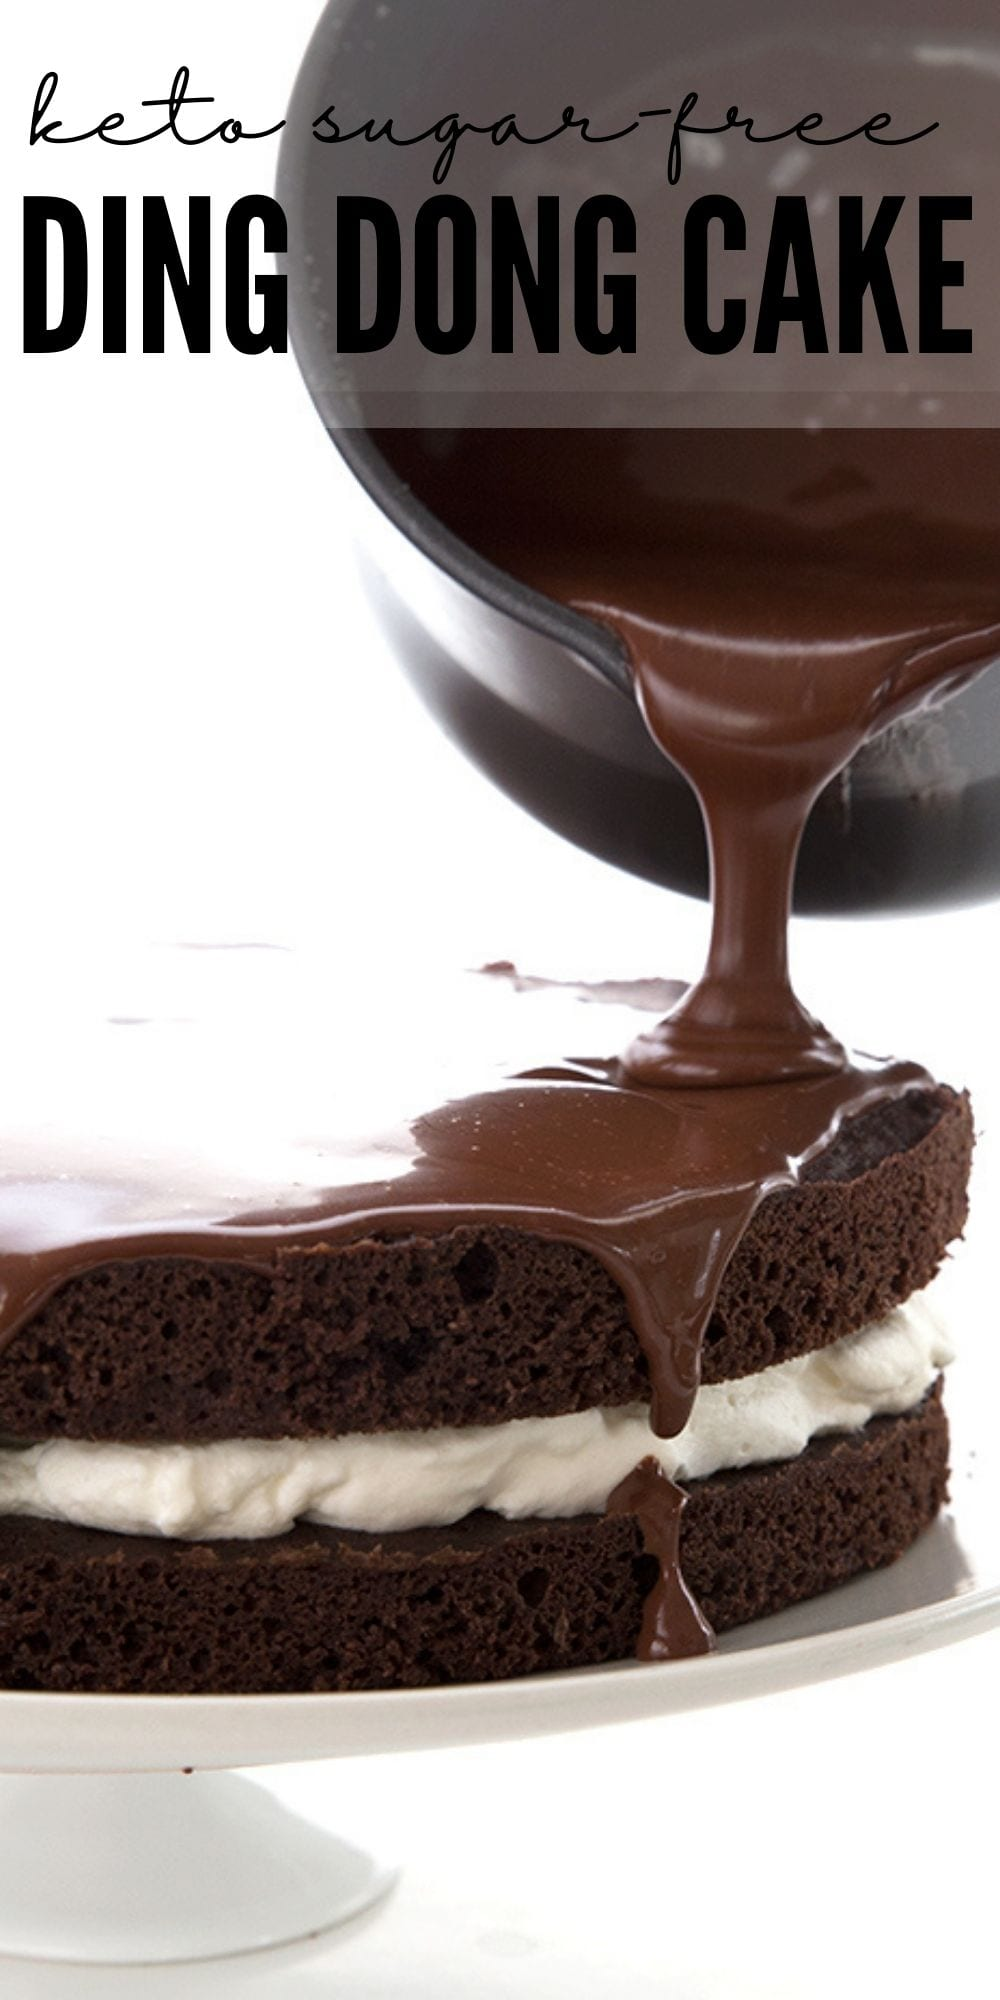 Titled image: pouring sugar-free chocolate ganache over a keto ding dong cake